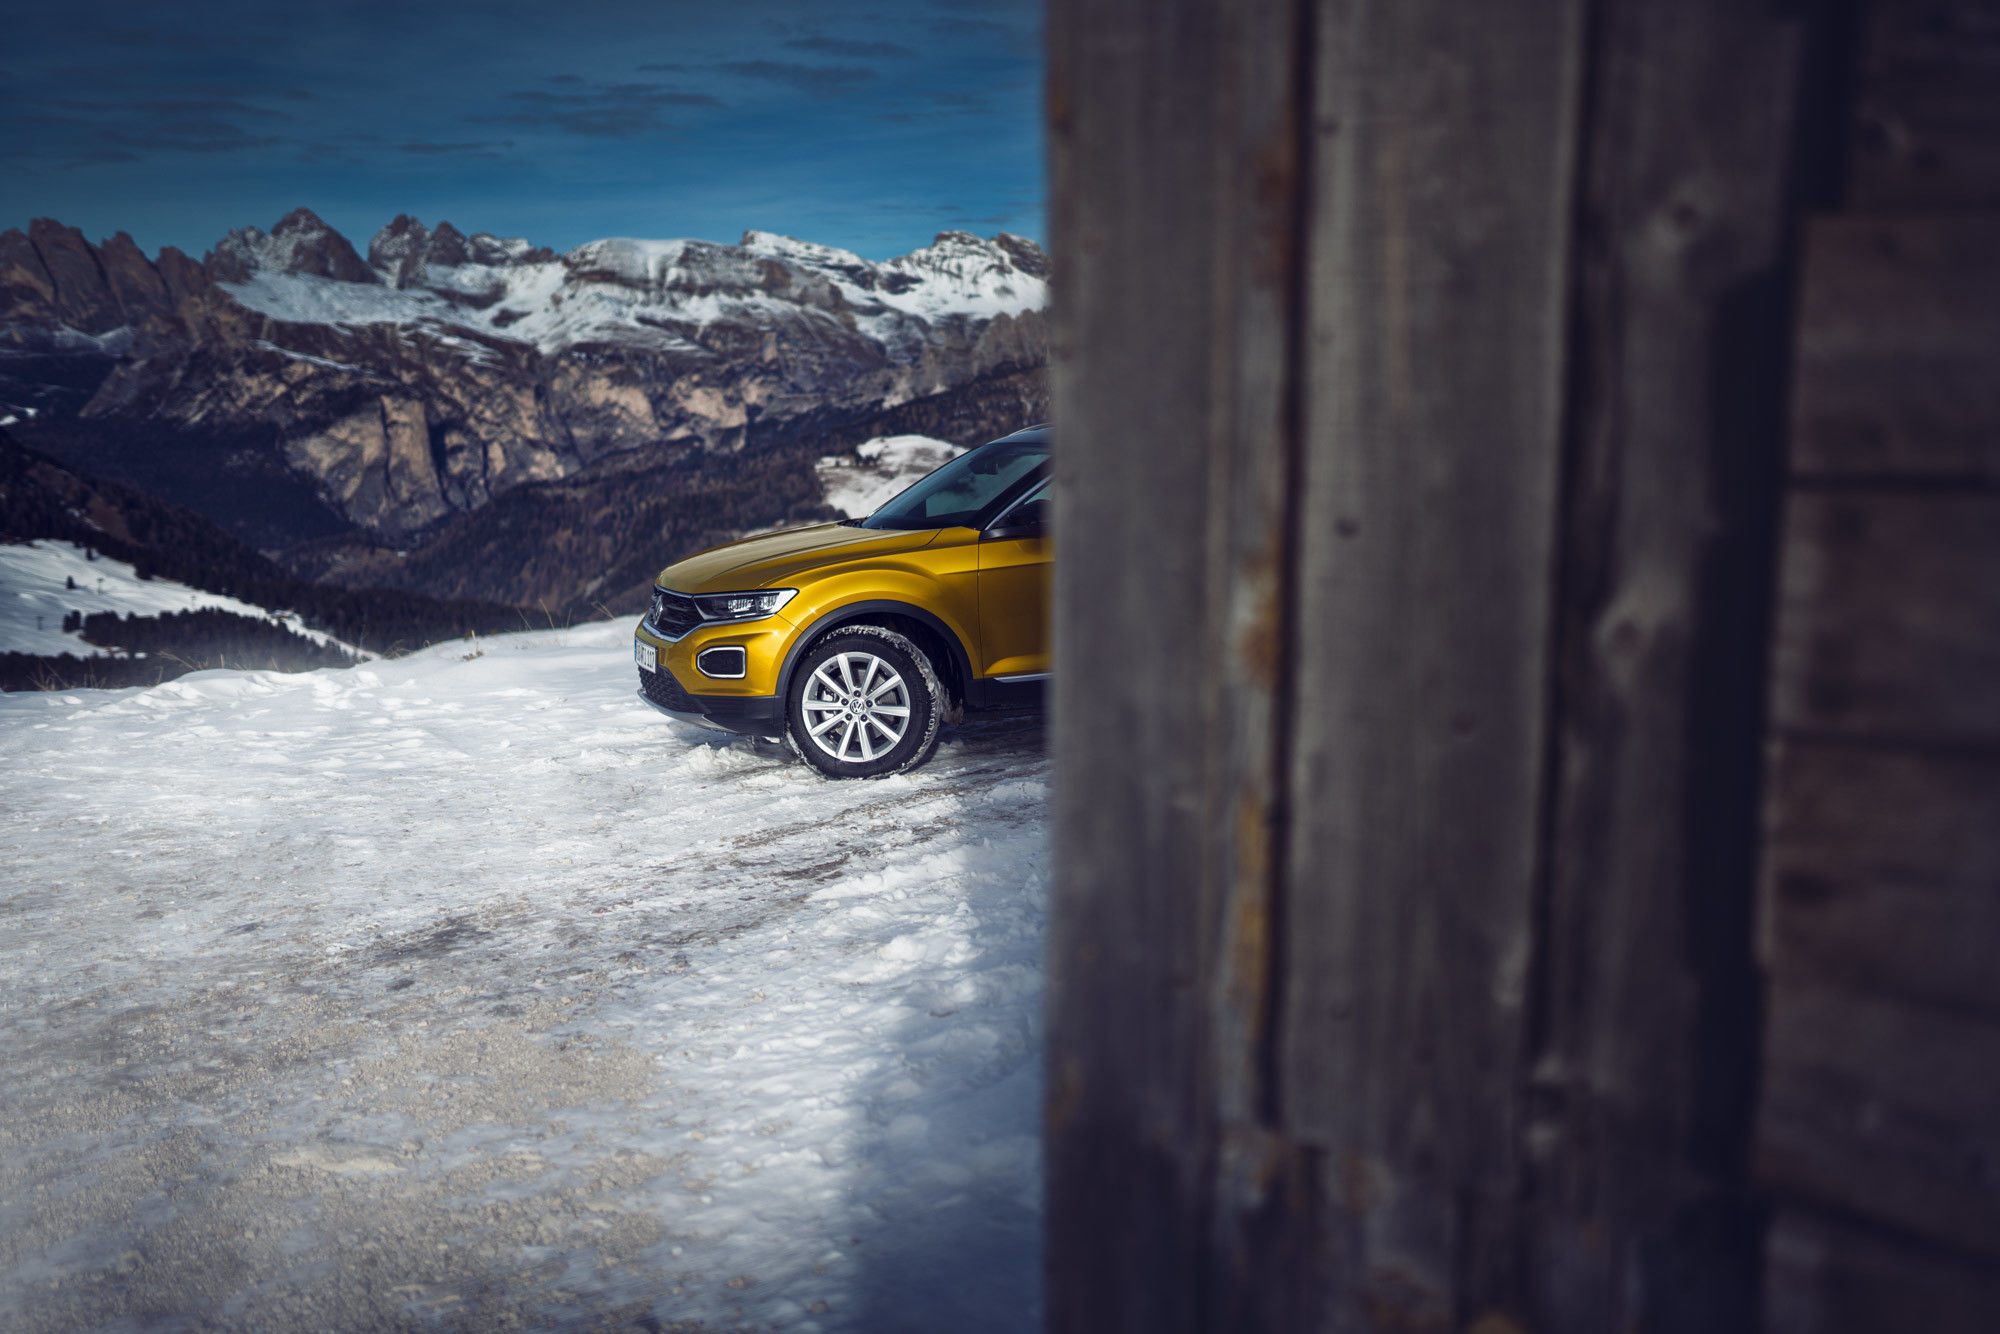 THOMAS SCHORN - ABOVE THE SKY | REPRESENTED BY BANRAP | CLIENT - VOLKSWAGEN | AGENCY - GRABARZ & PARTNER